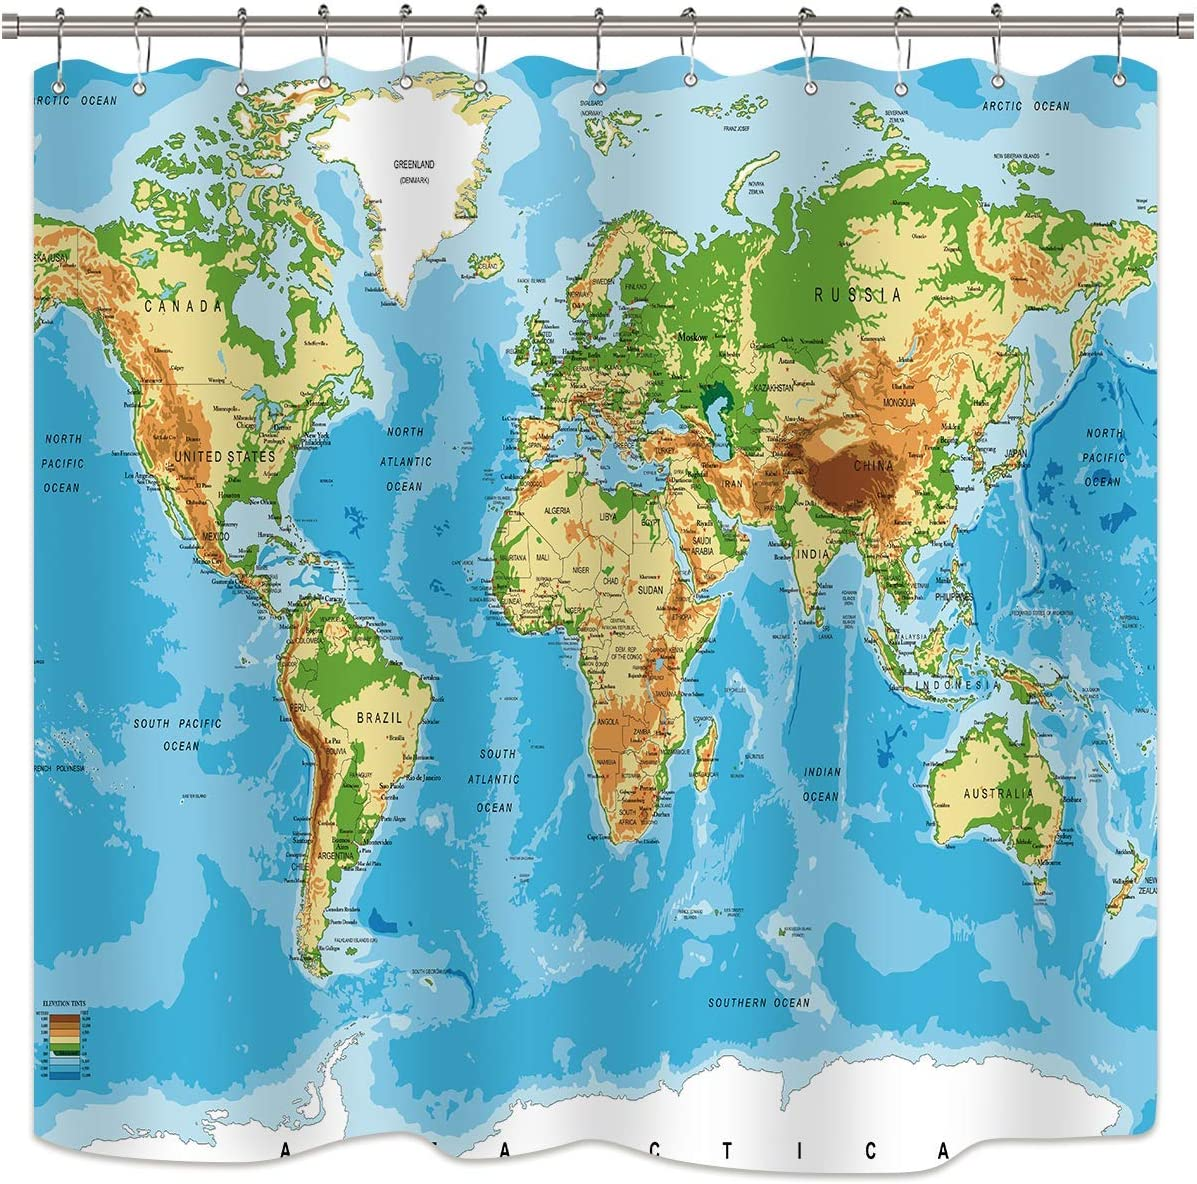 Riyidecor World Map Shower Curtains Geography Countries Capital Cities Blue Earth Textile Decor Bathroom Accessories Set Fabric Polyester Multicolour 72WX72H Inch Hooks Included